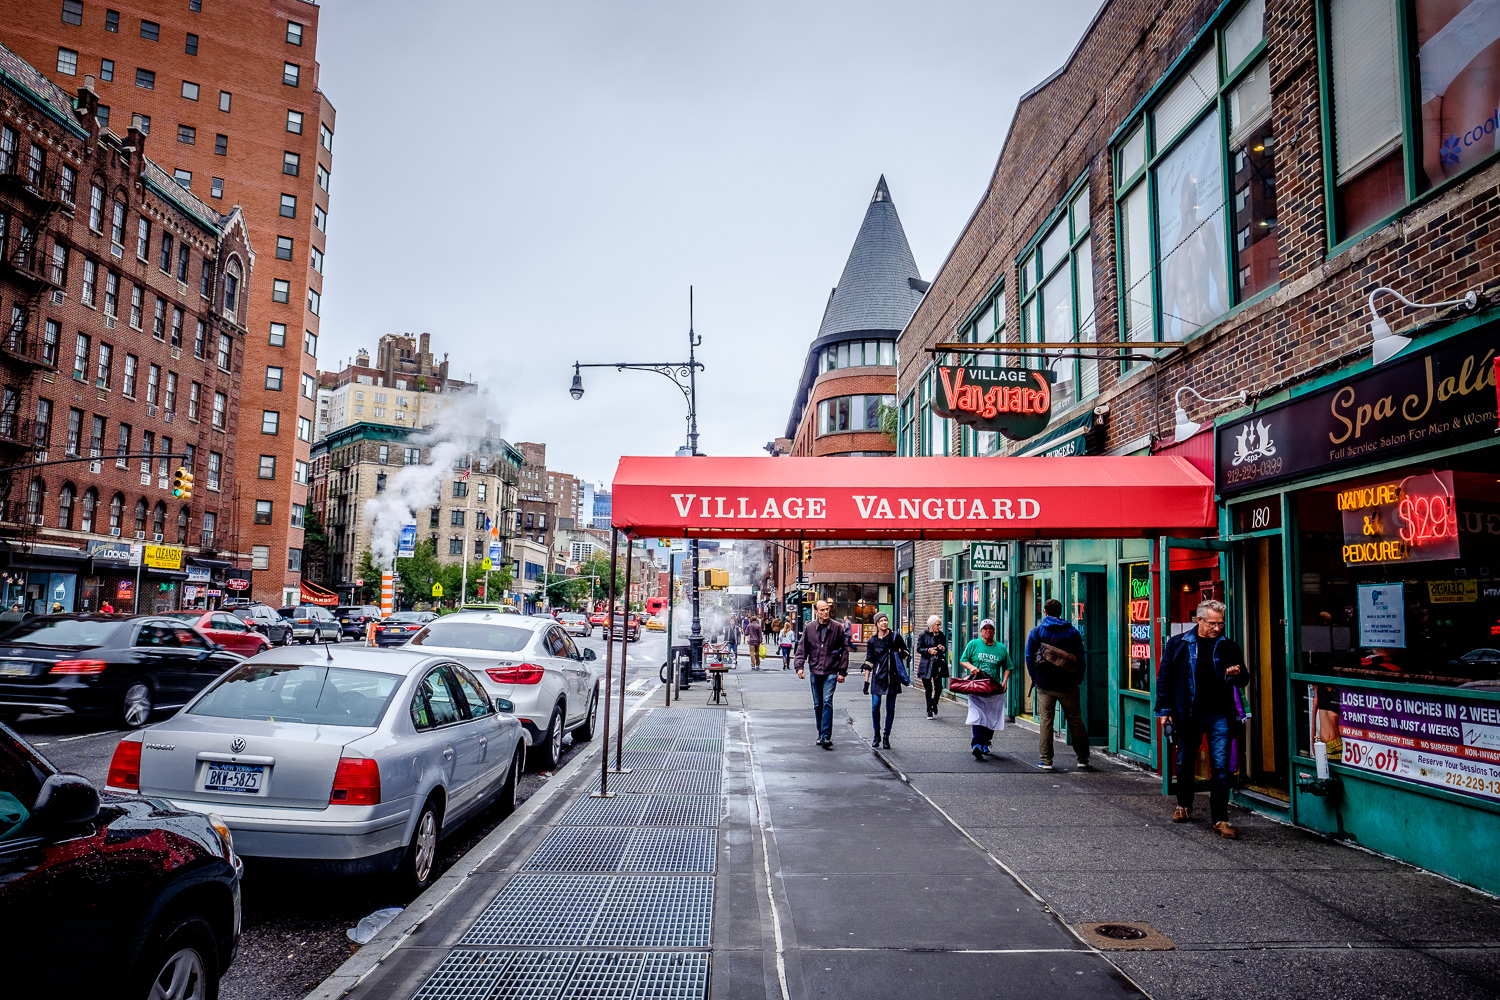 The Village Vanguard, famous jazz club in operation since 1935